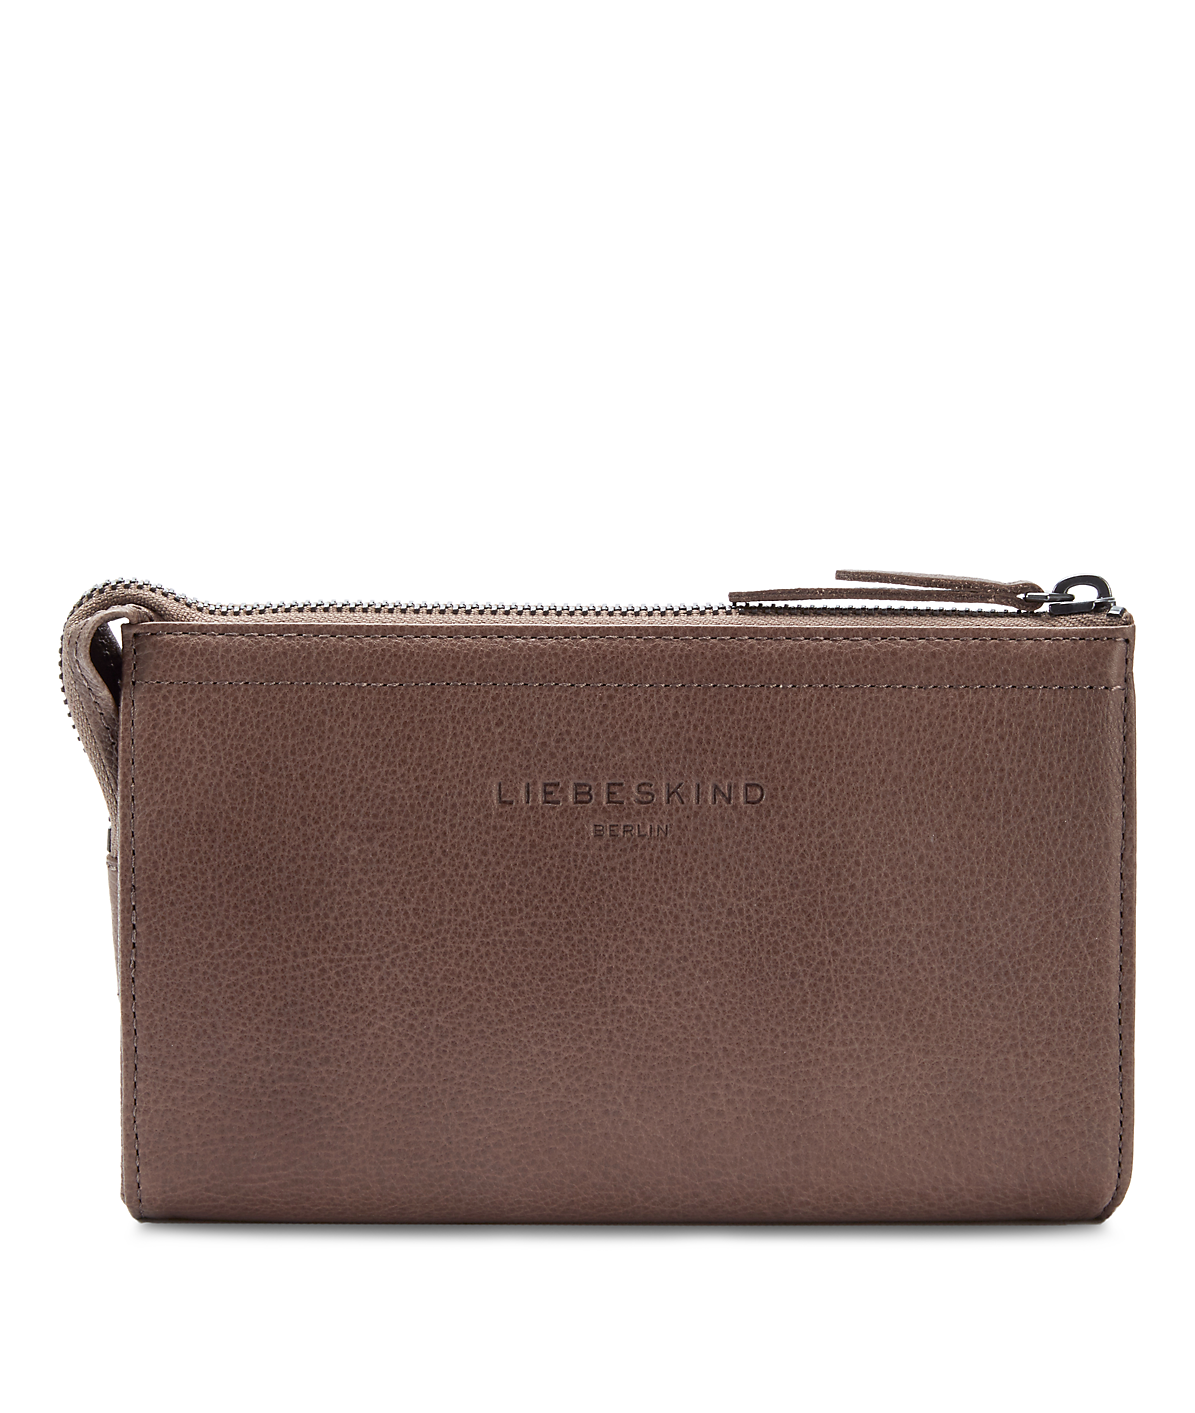 TabiF7 clutch from liebeskind